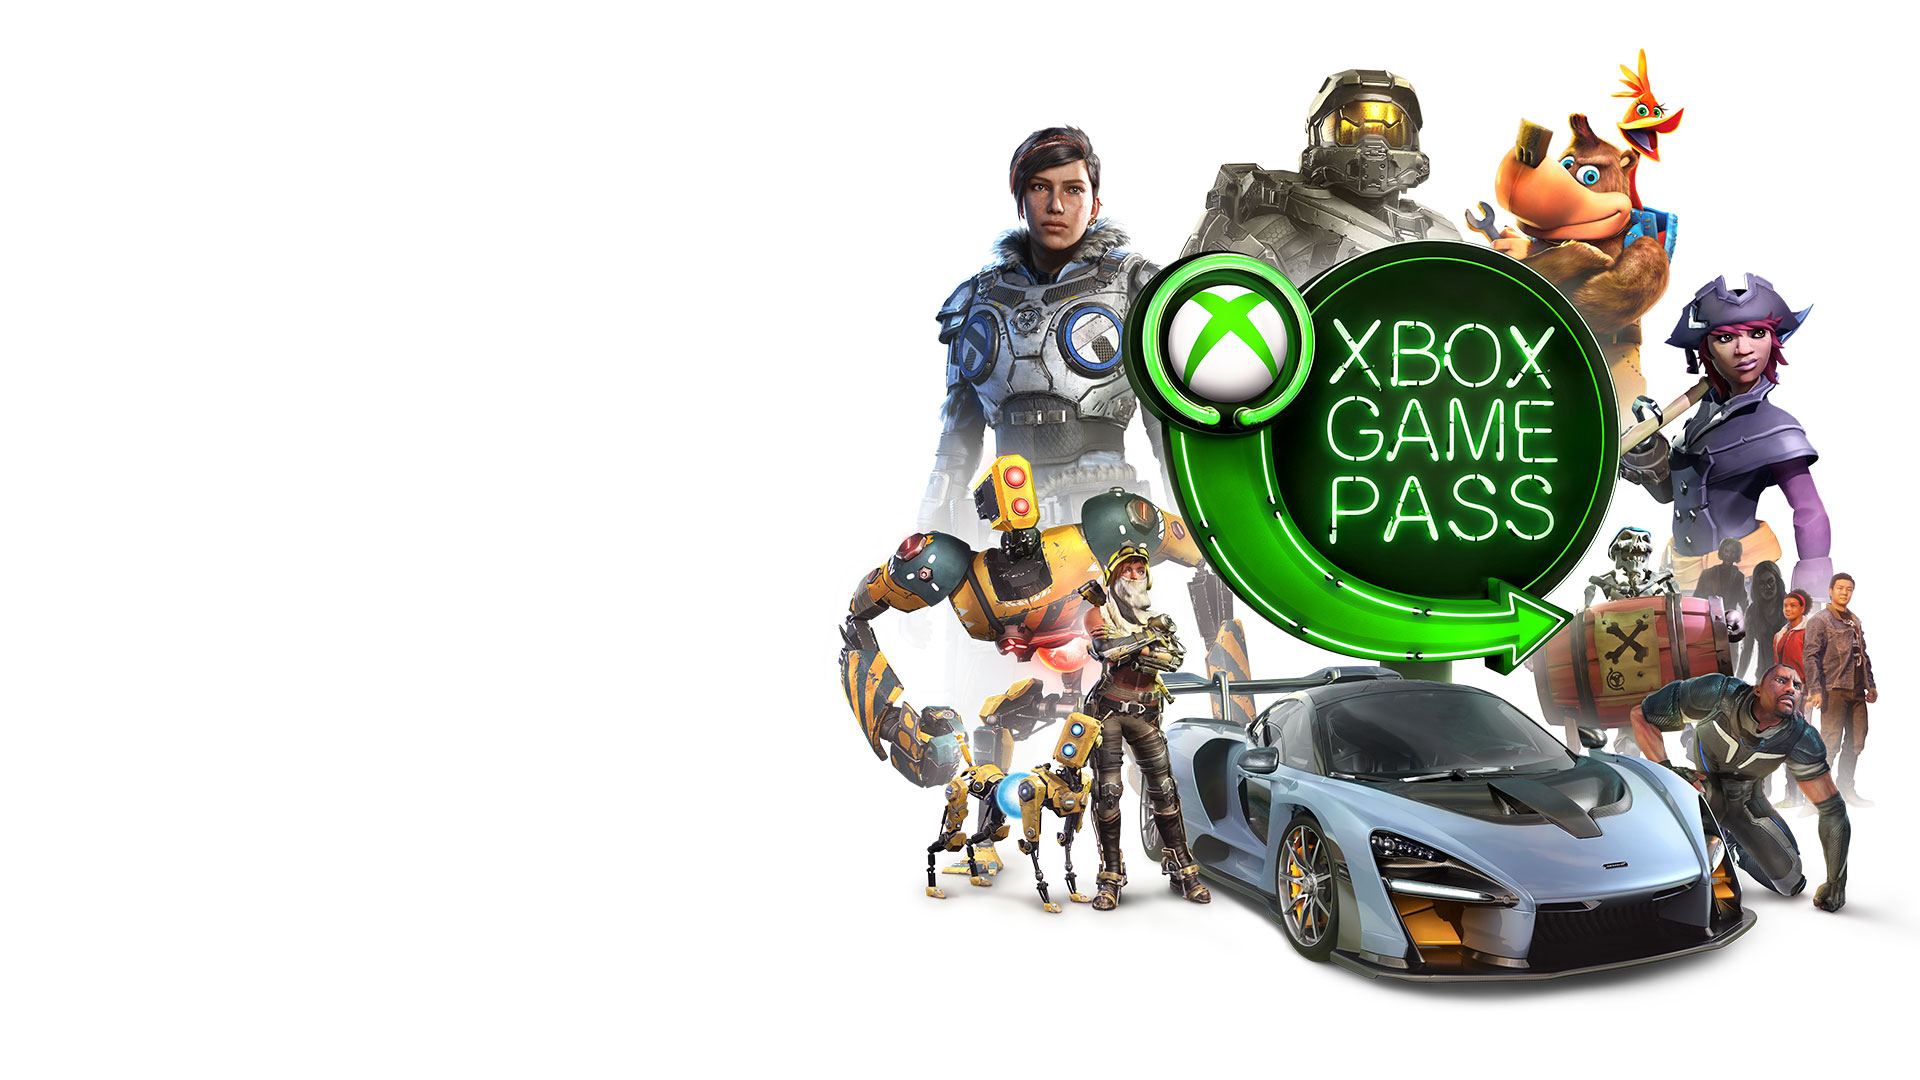 Logo van Xbox Game Pass met daaromheen Xbox-personages zoals Master Chief, Banjo en Kazooie, piraten uit Sea of Thieves en Recore-personages